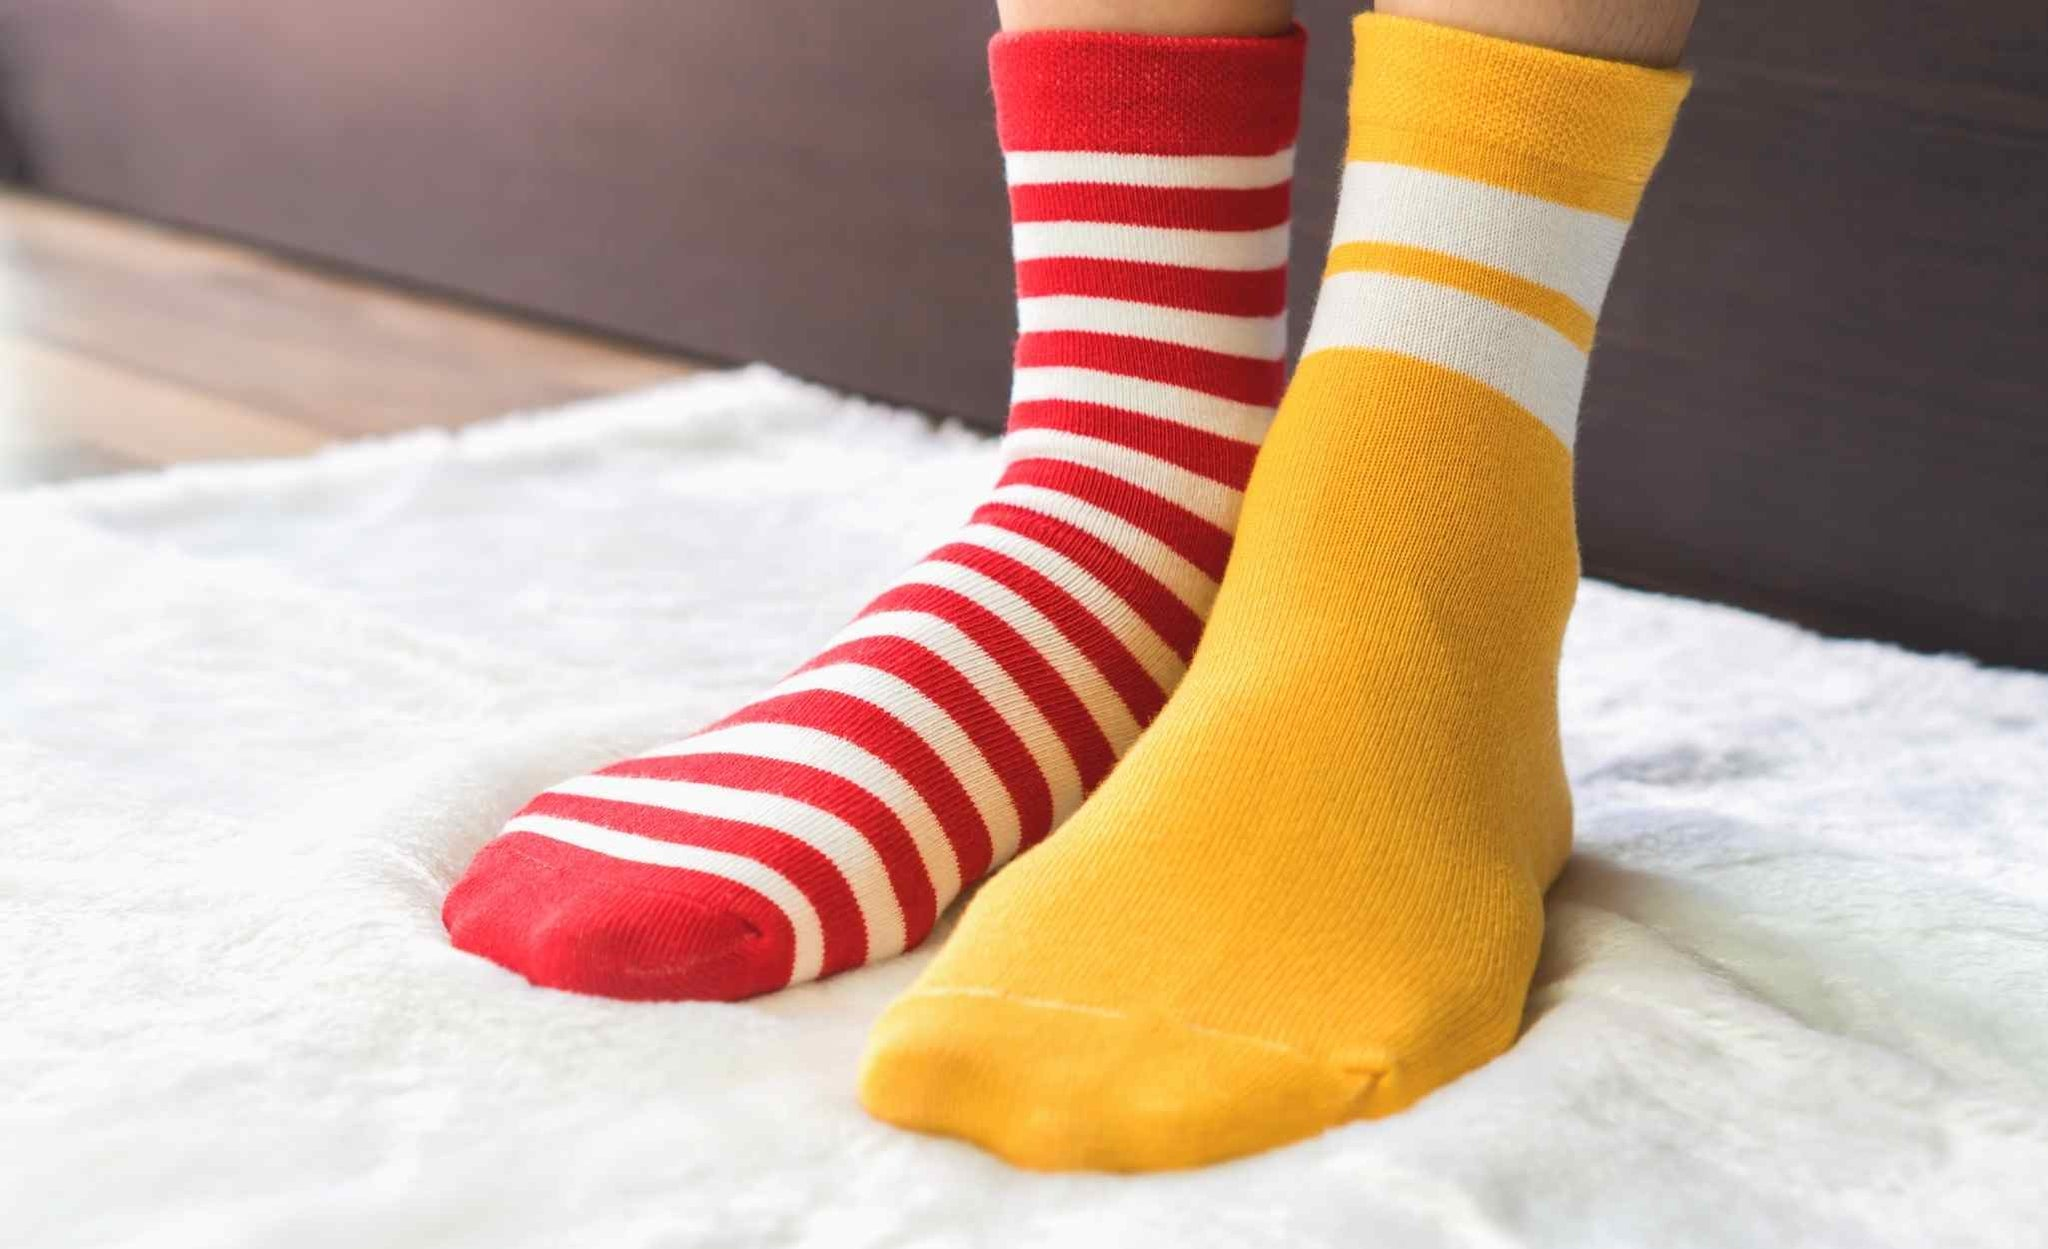 How often should I replace my socks?